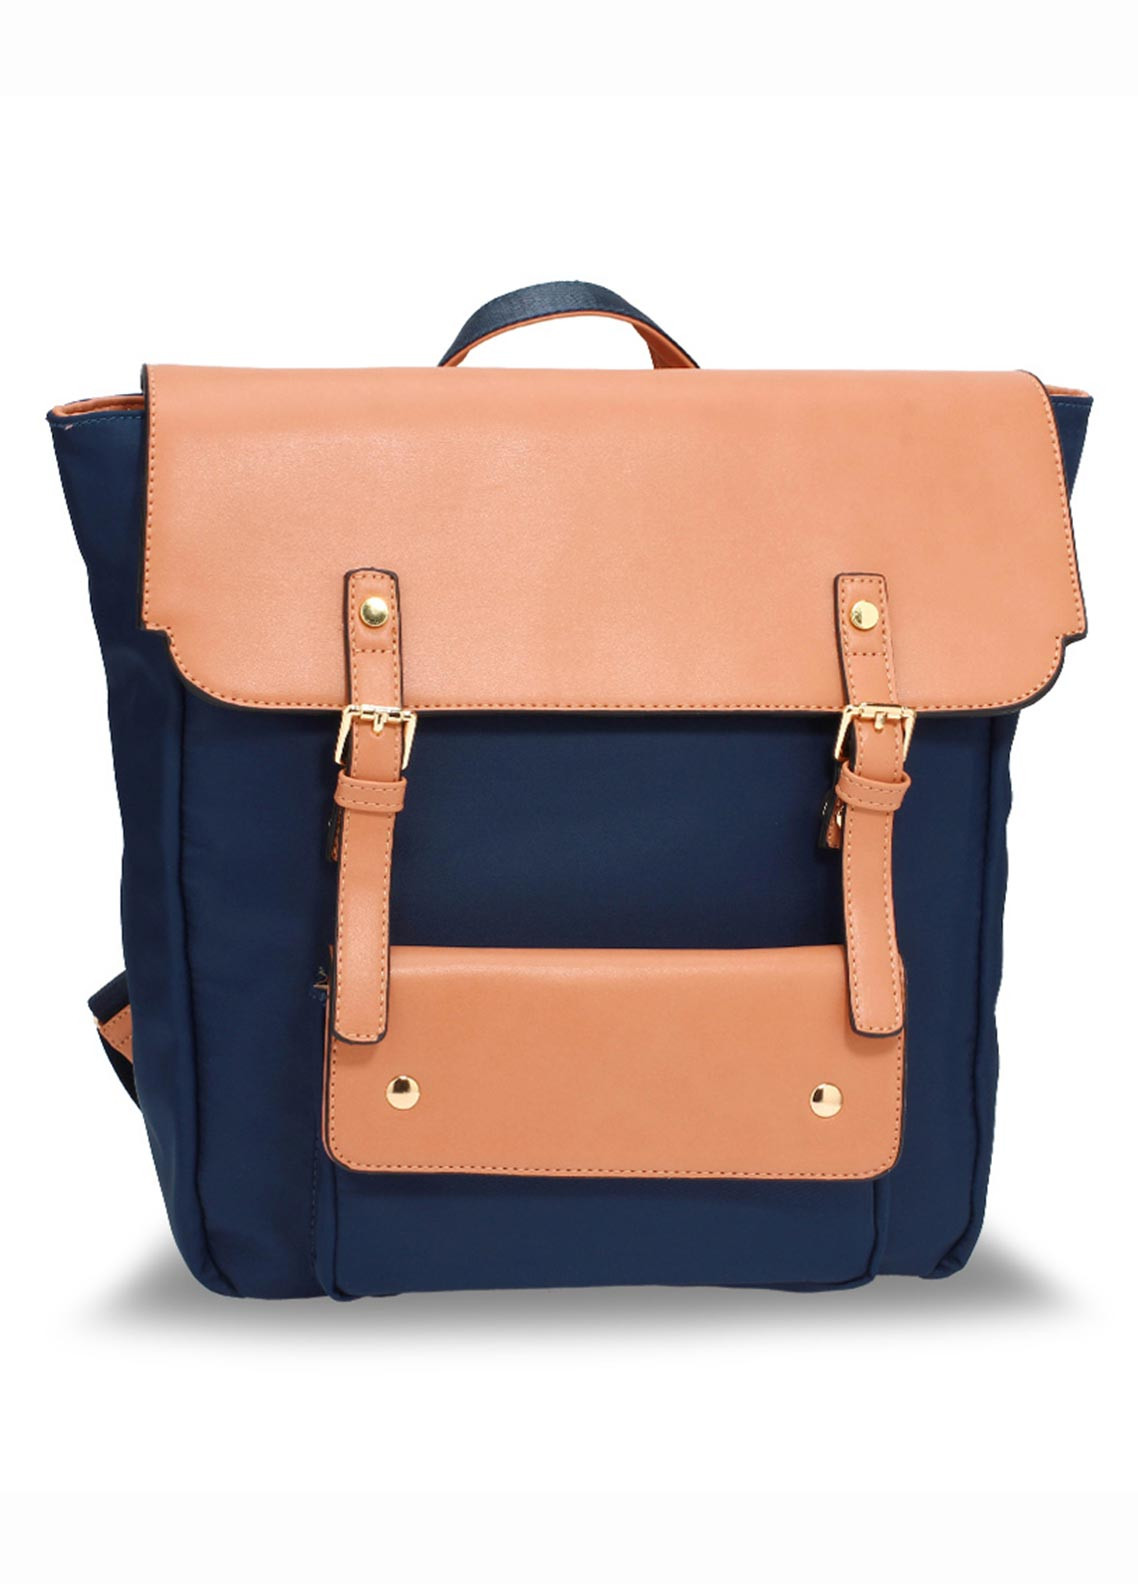 51eb973d96ec Anna Grace London Faux Leather Backpack Bags for Women Navy with Smooth  Texture